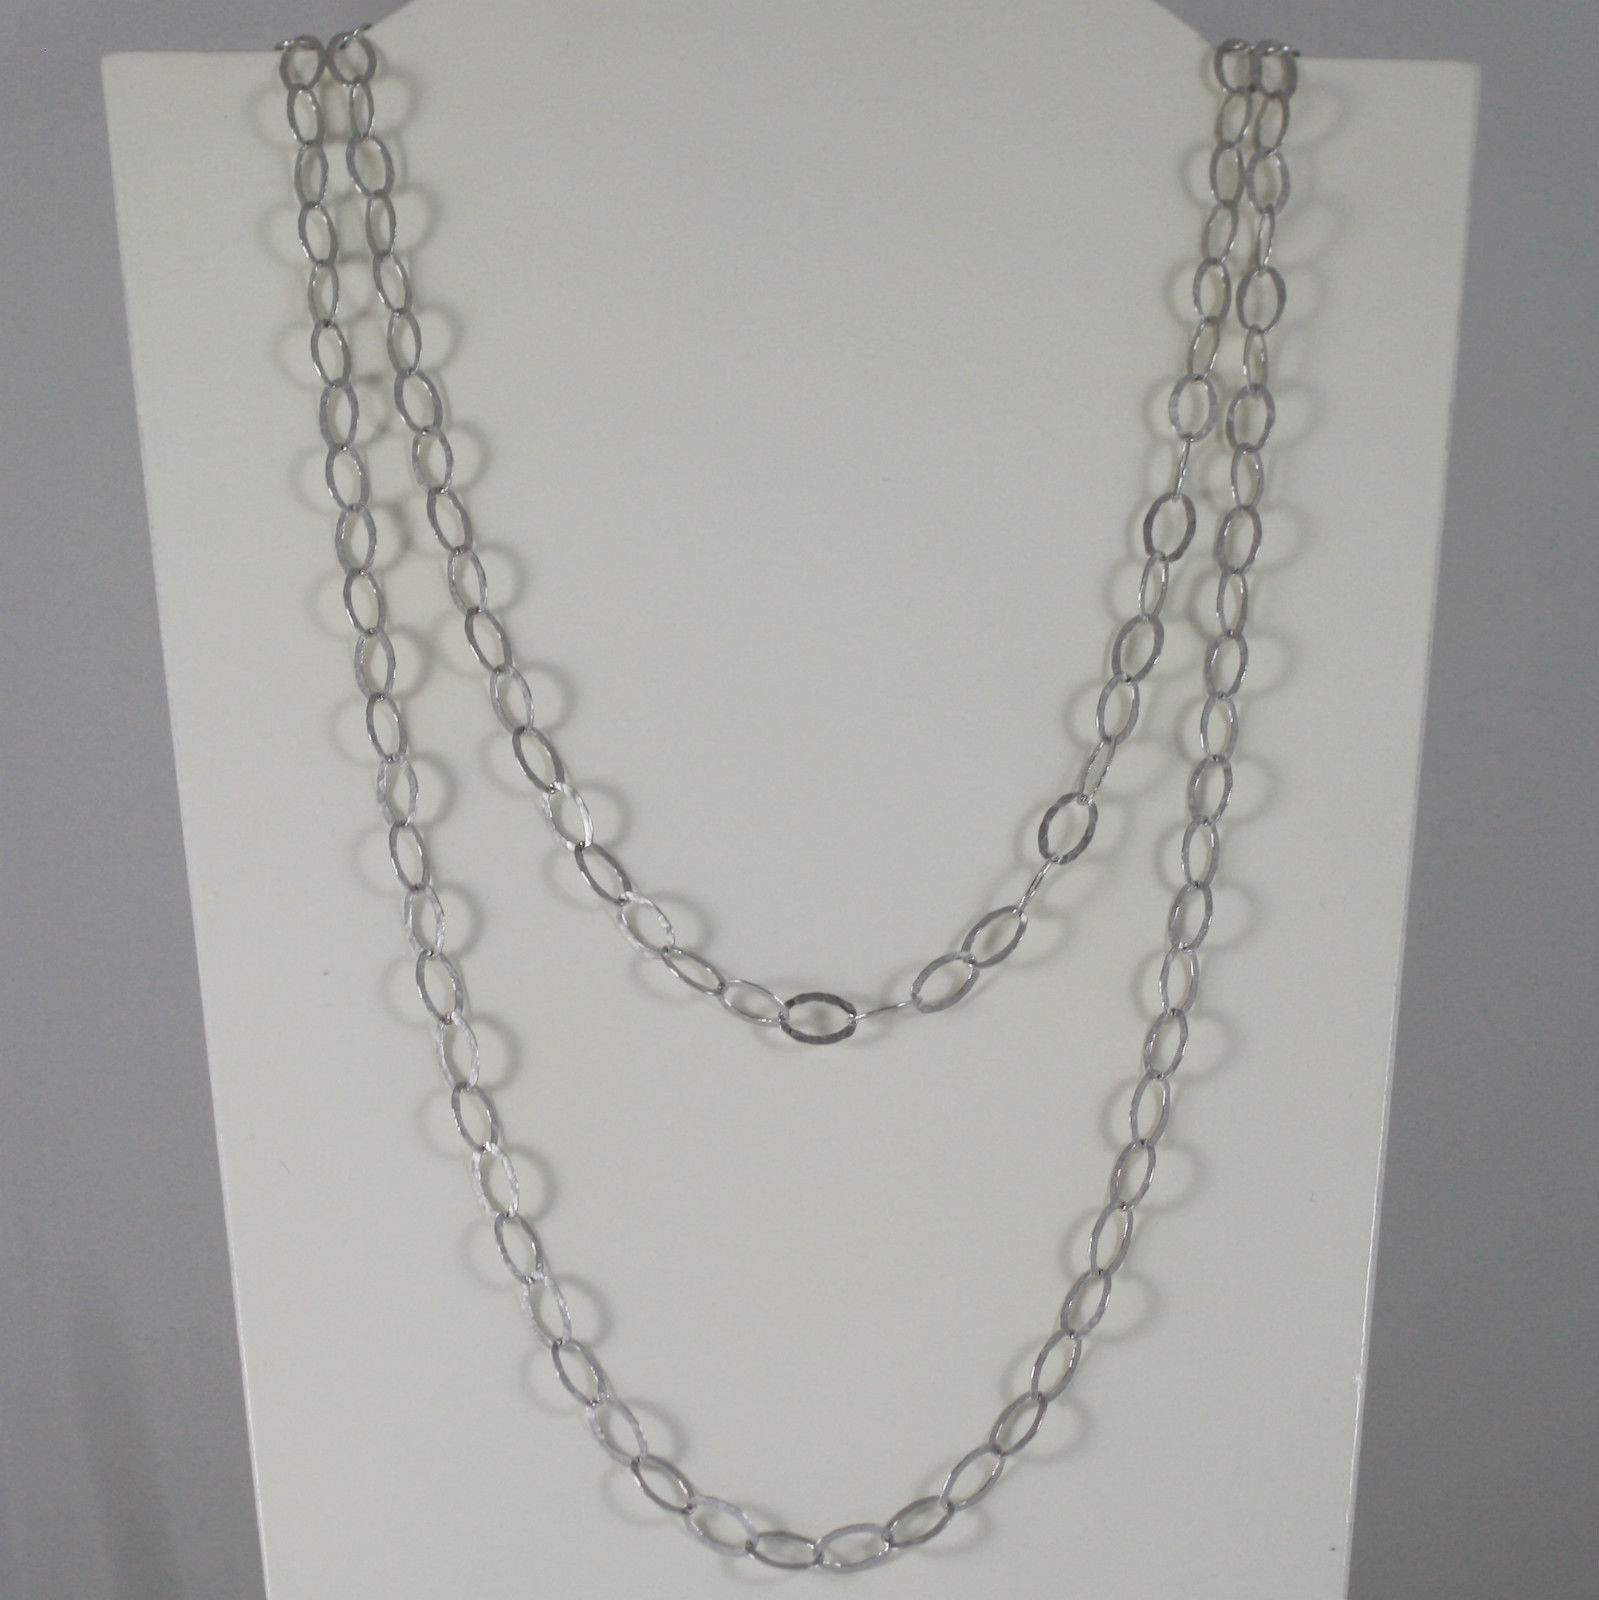 SOLID 925 SILVER NECKLACE LONG OVAL CHAIN FINELY HAMMERED BY NANIS MADE IN ITALY